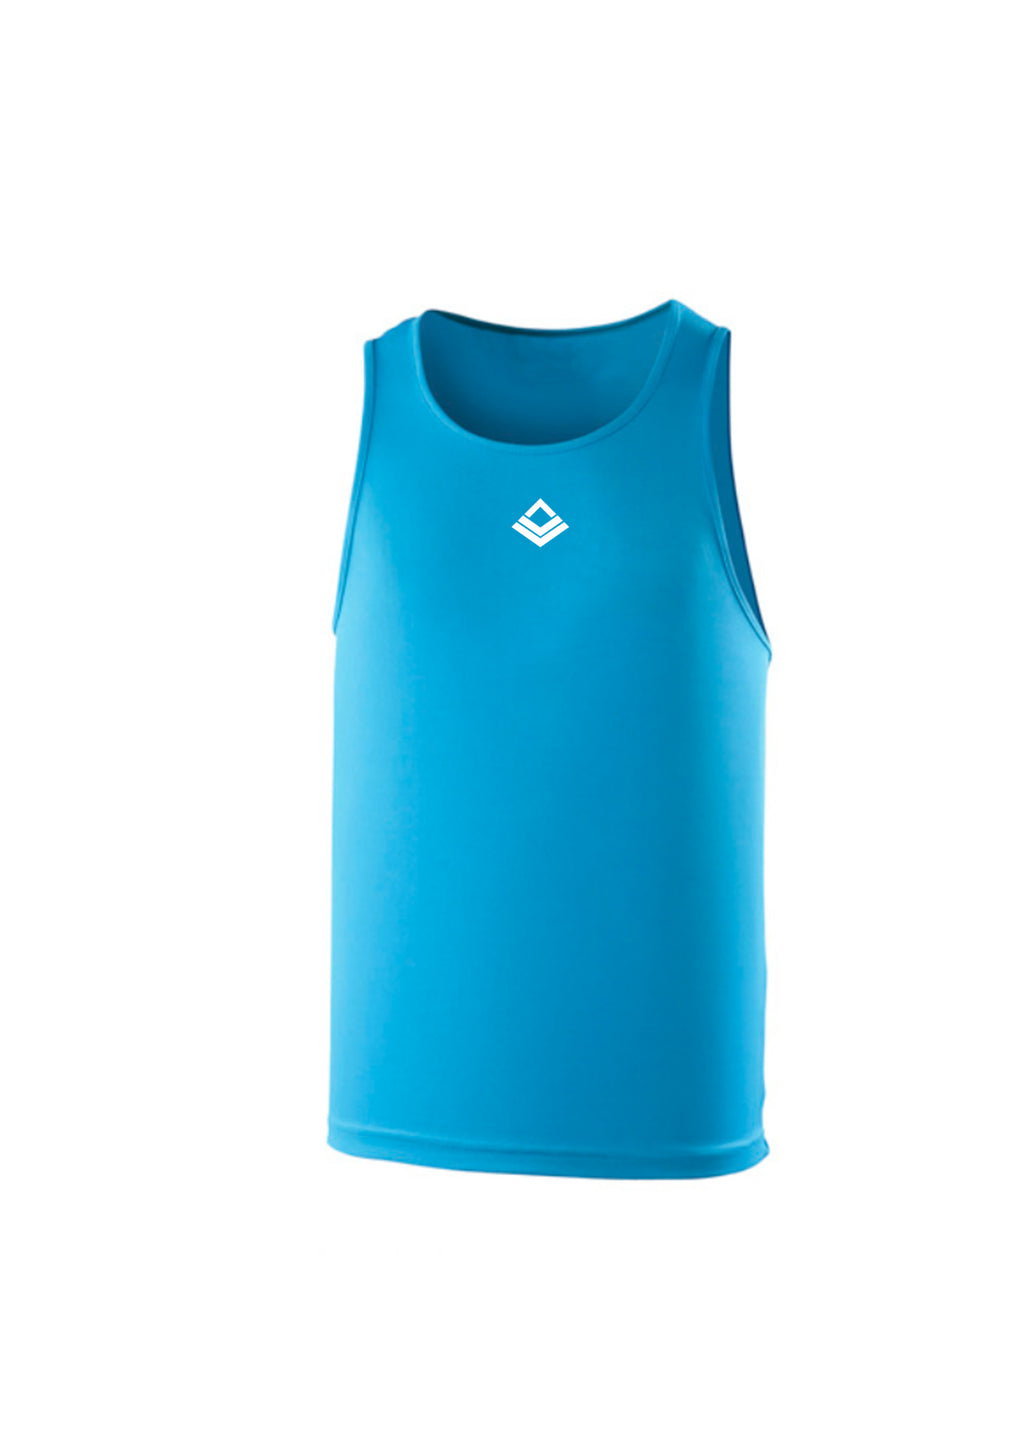 SWAGGERLICIOUS COOL TRAINING TANK TOP-SAPPHIRE - swaggerlicious-clothing.com